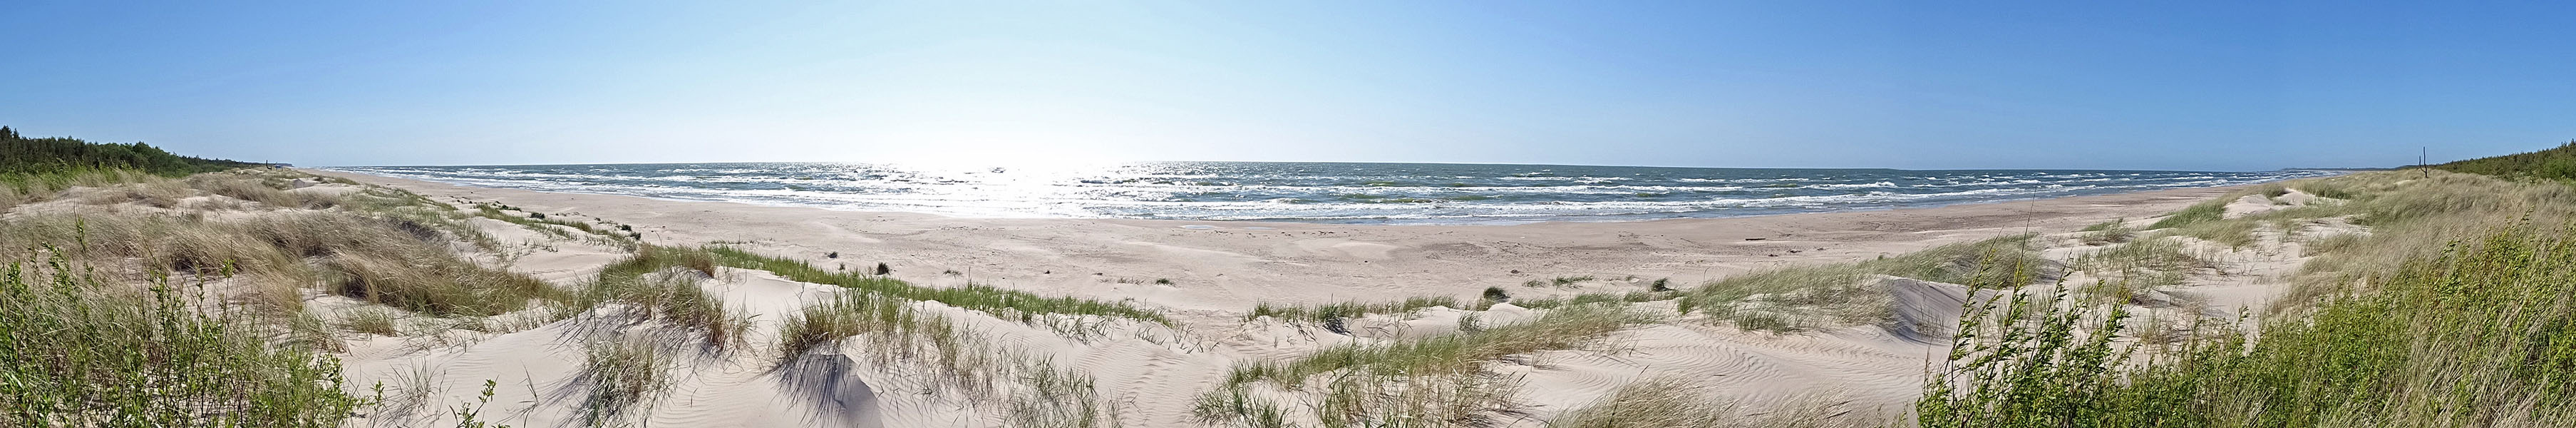 Pano Strand Richtung See whe_bearbeitet-1